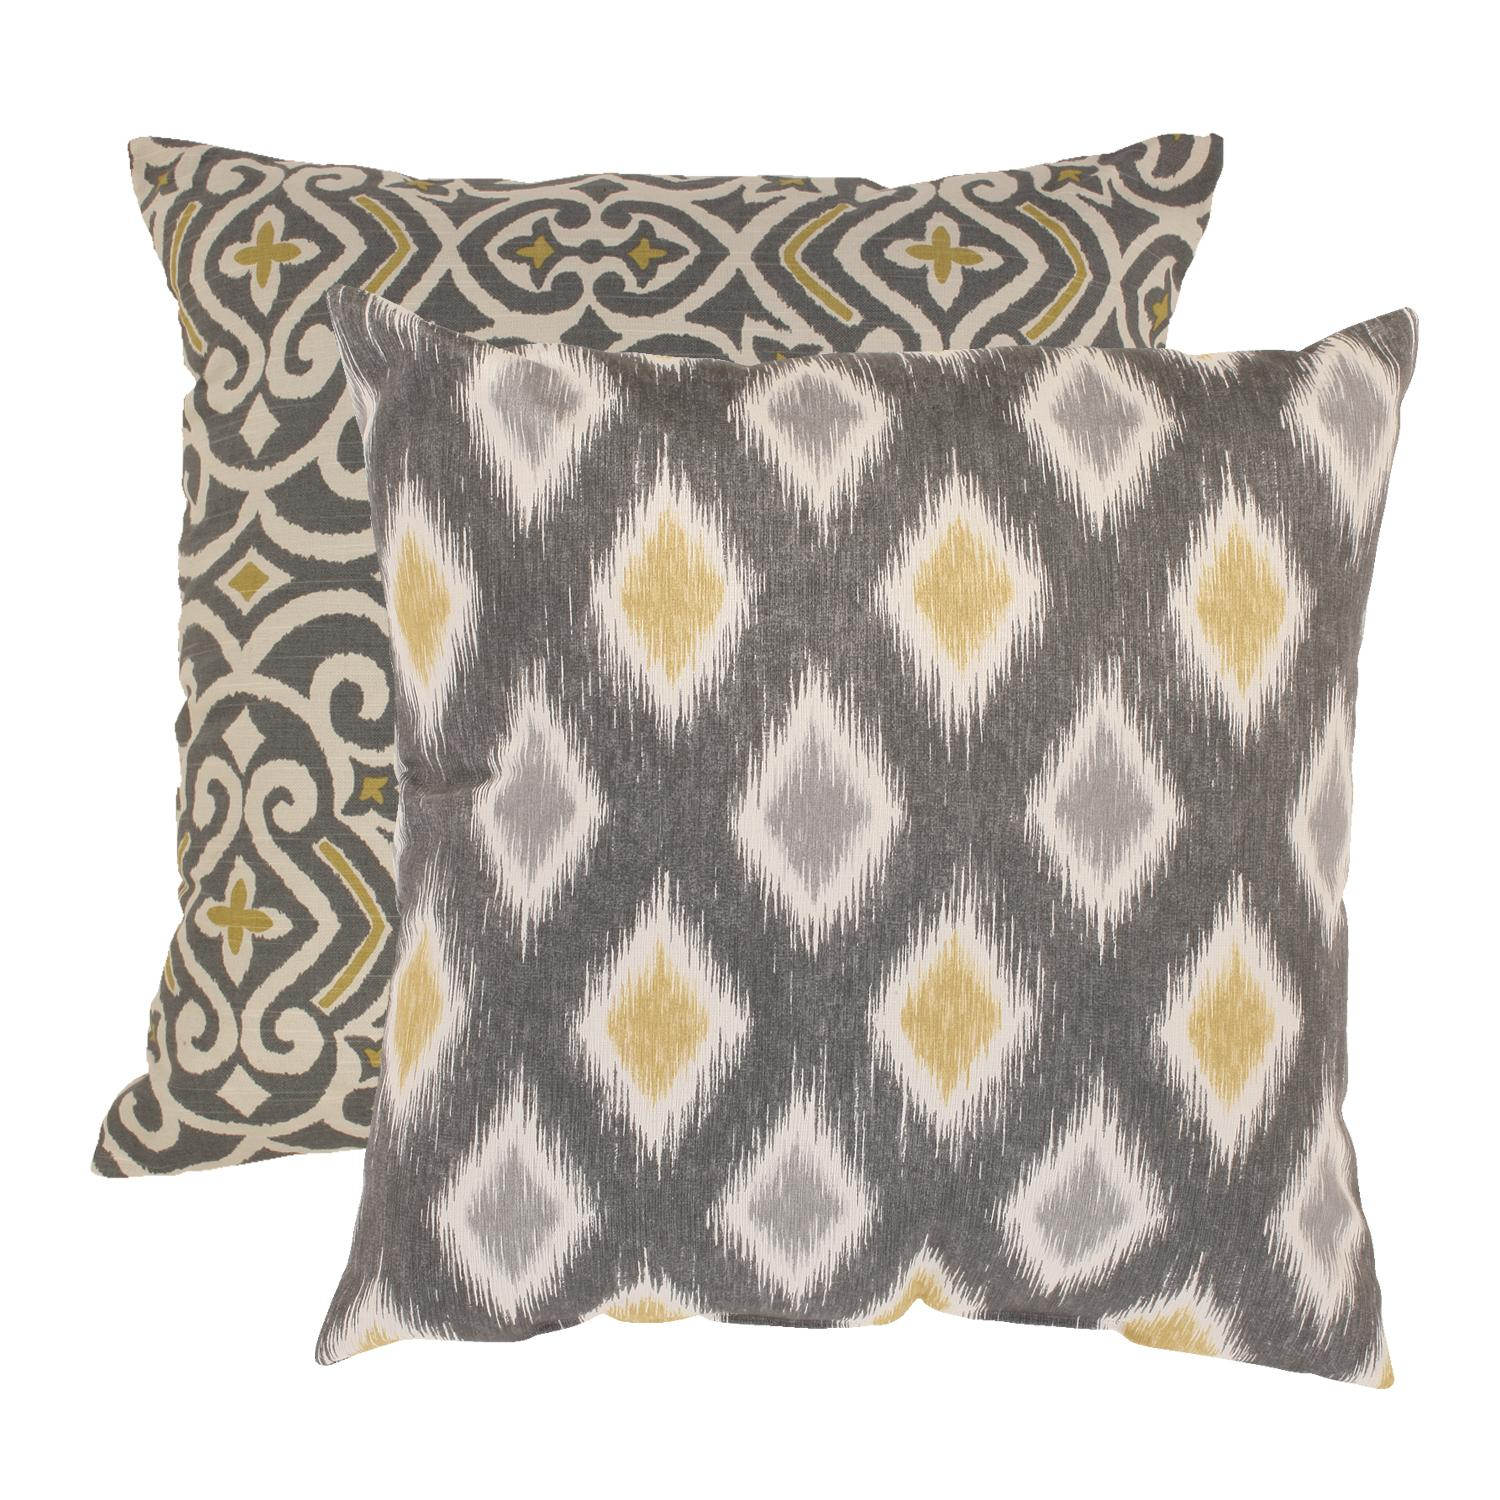 "2 Eco-Friendly Moroccan Flair Graphite and Chartreuse Throw Pillows 18"" x 18"""